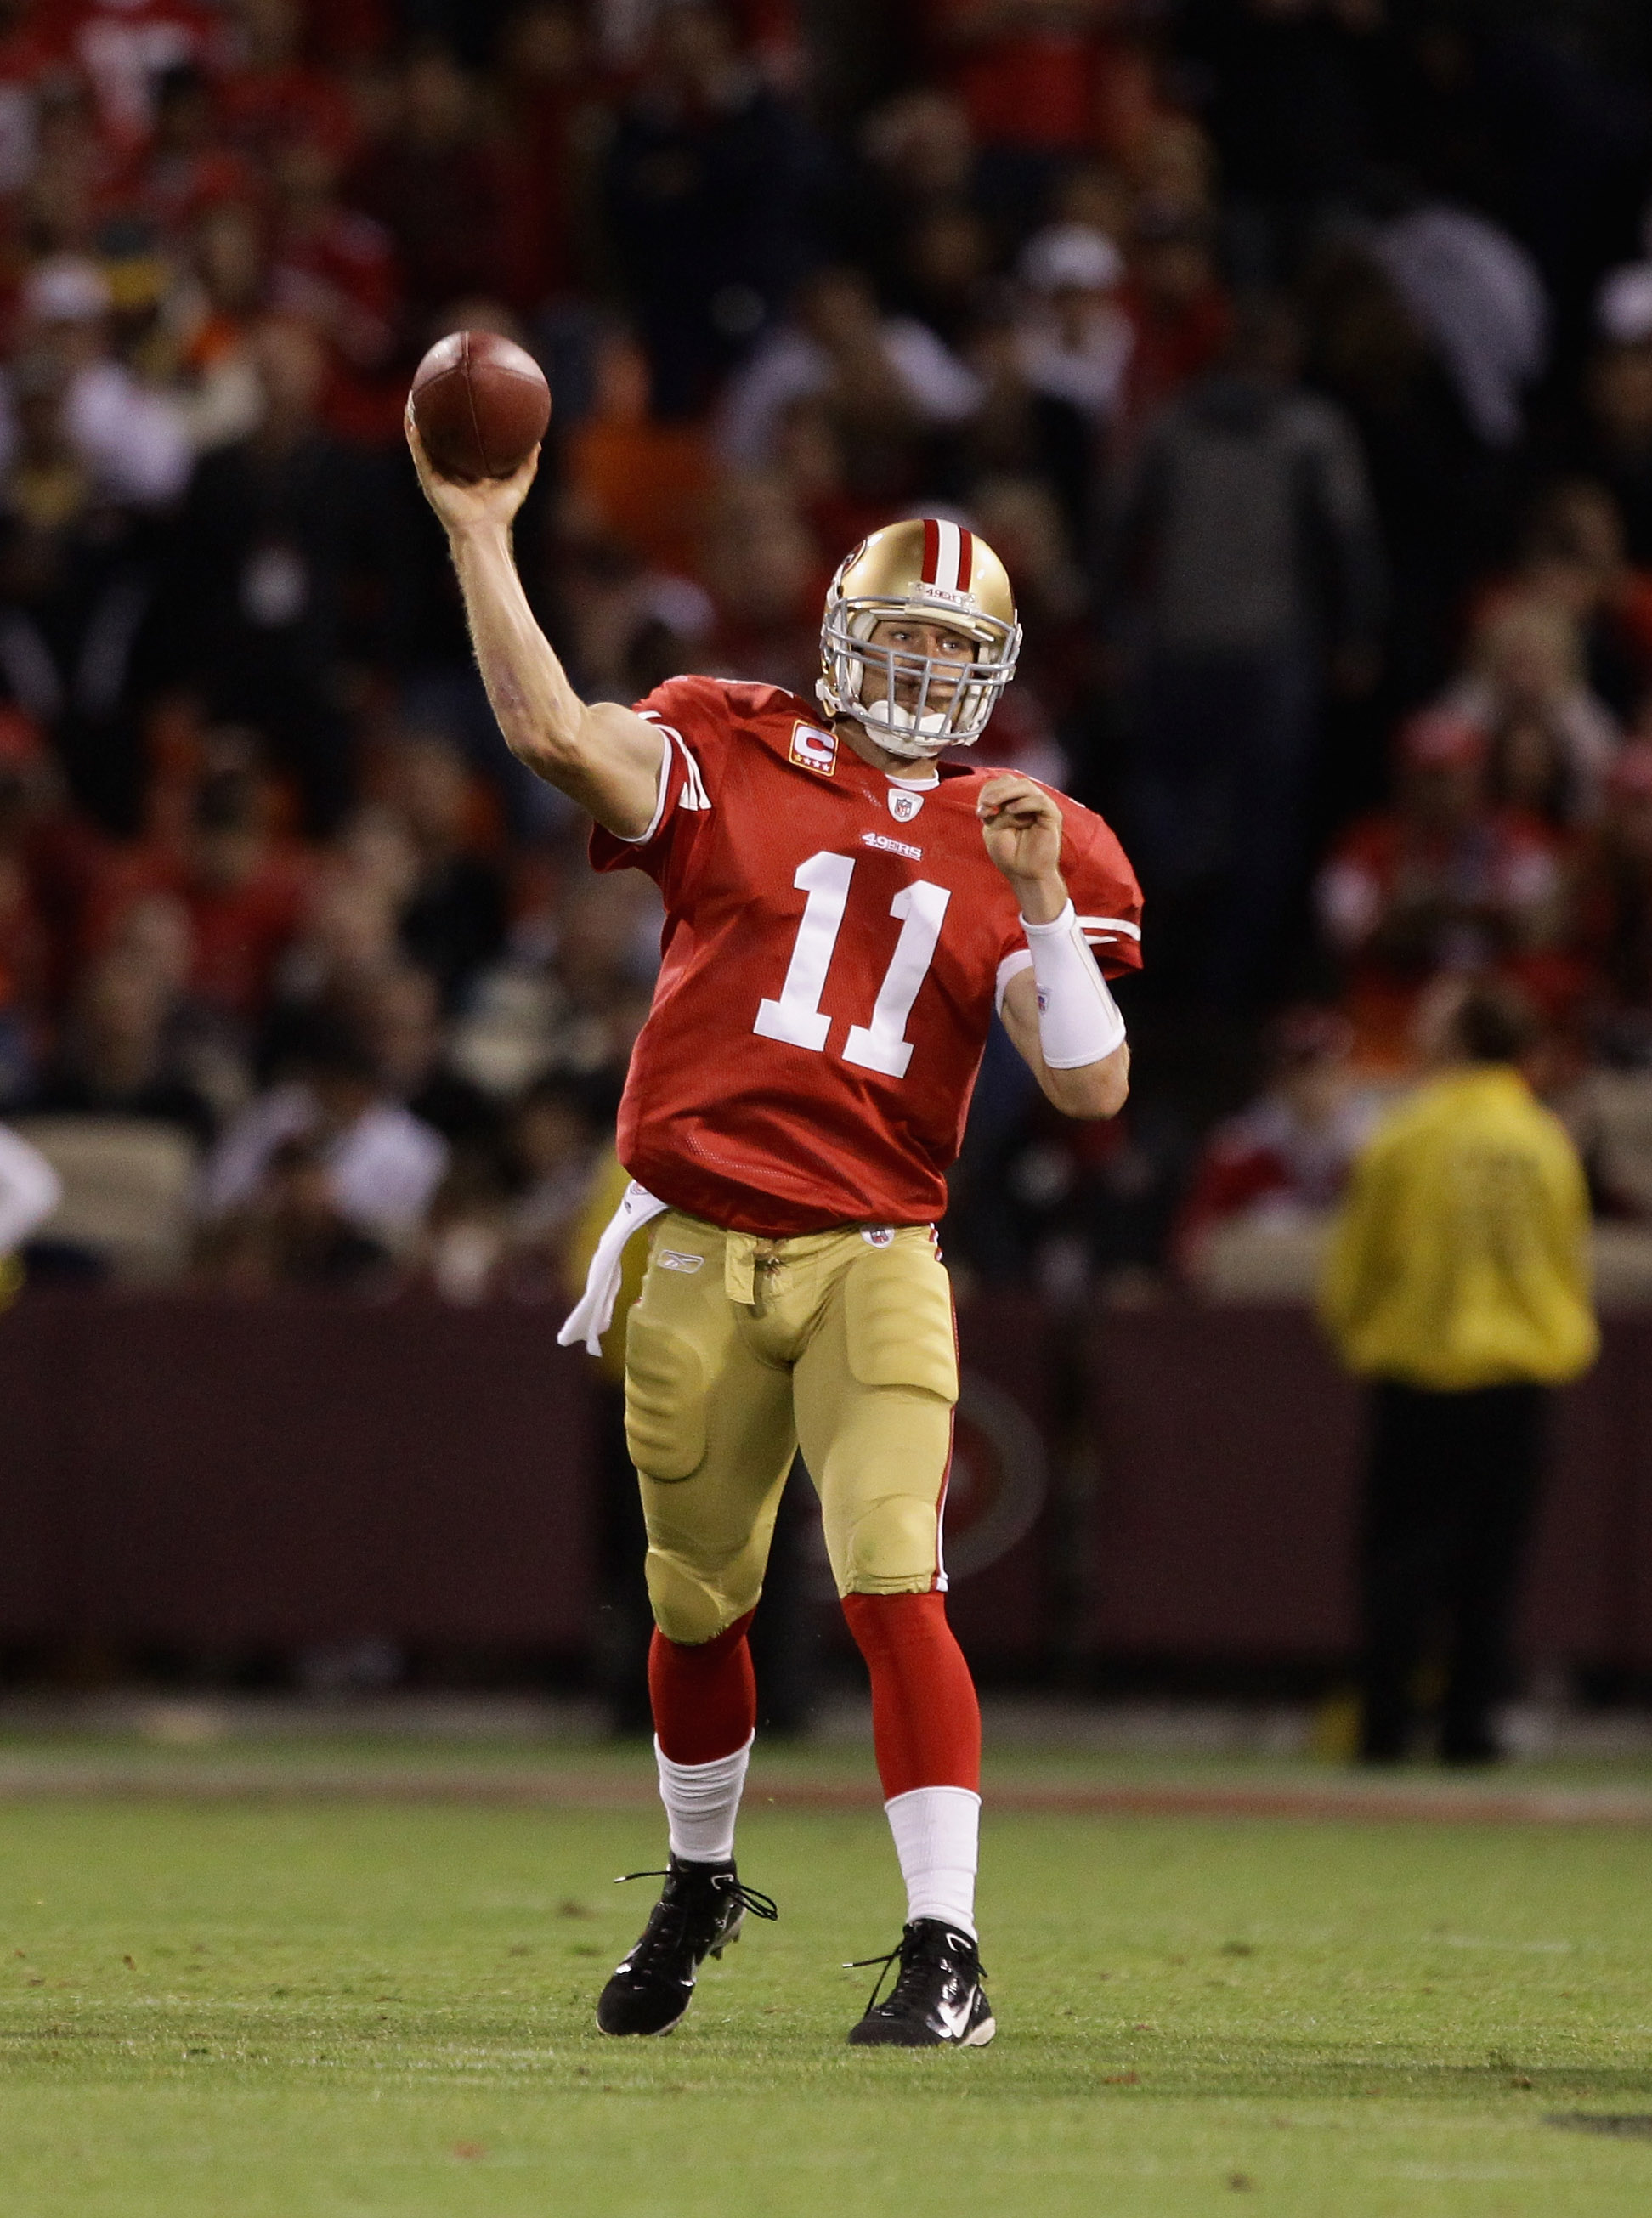 SAN FRANCISCO - SEPTEMBER 20:  Alex Smith #11 of the San Francisco 49ers throws the ball during their game against the New Orleans Saints at Candlestick Park on September 20, 2010 in San Francisco, California.  (Photo by Ezra Shaw/Getty Images)